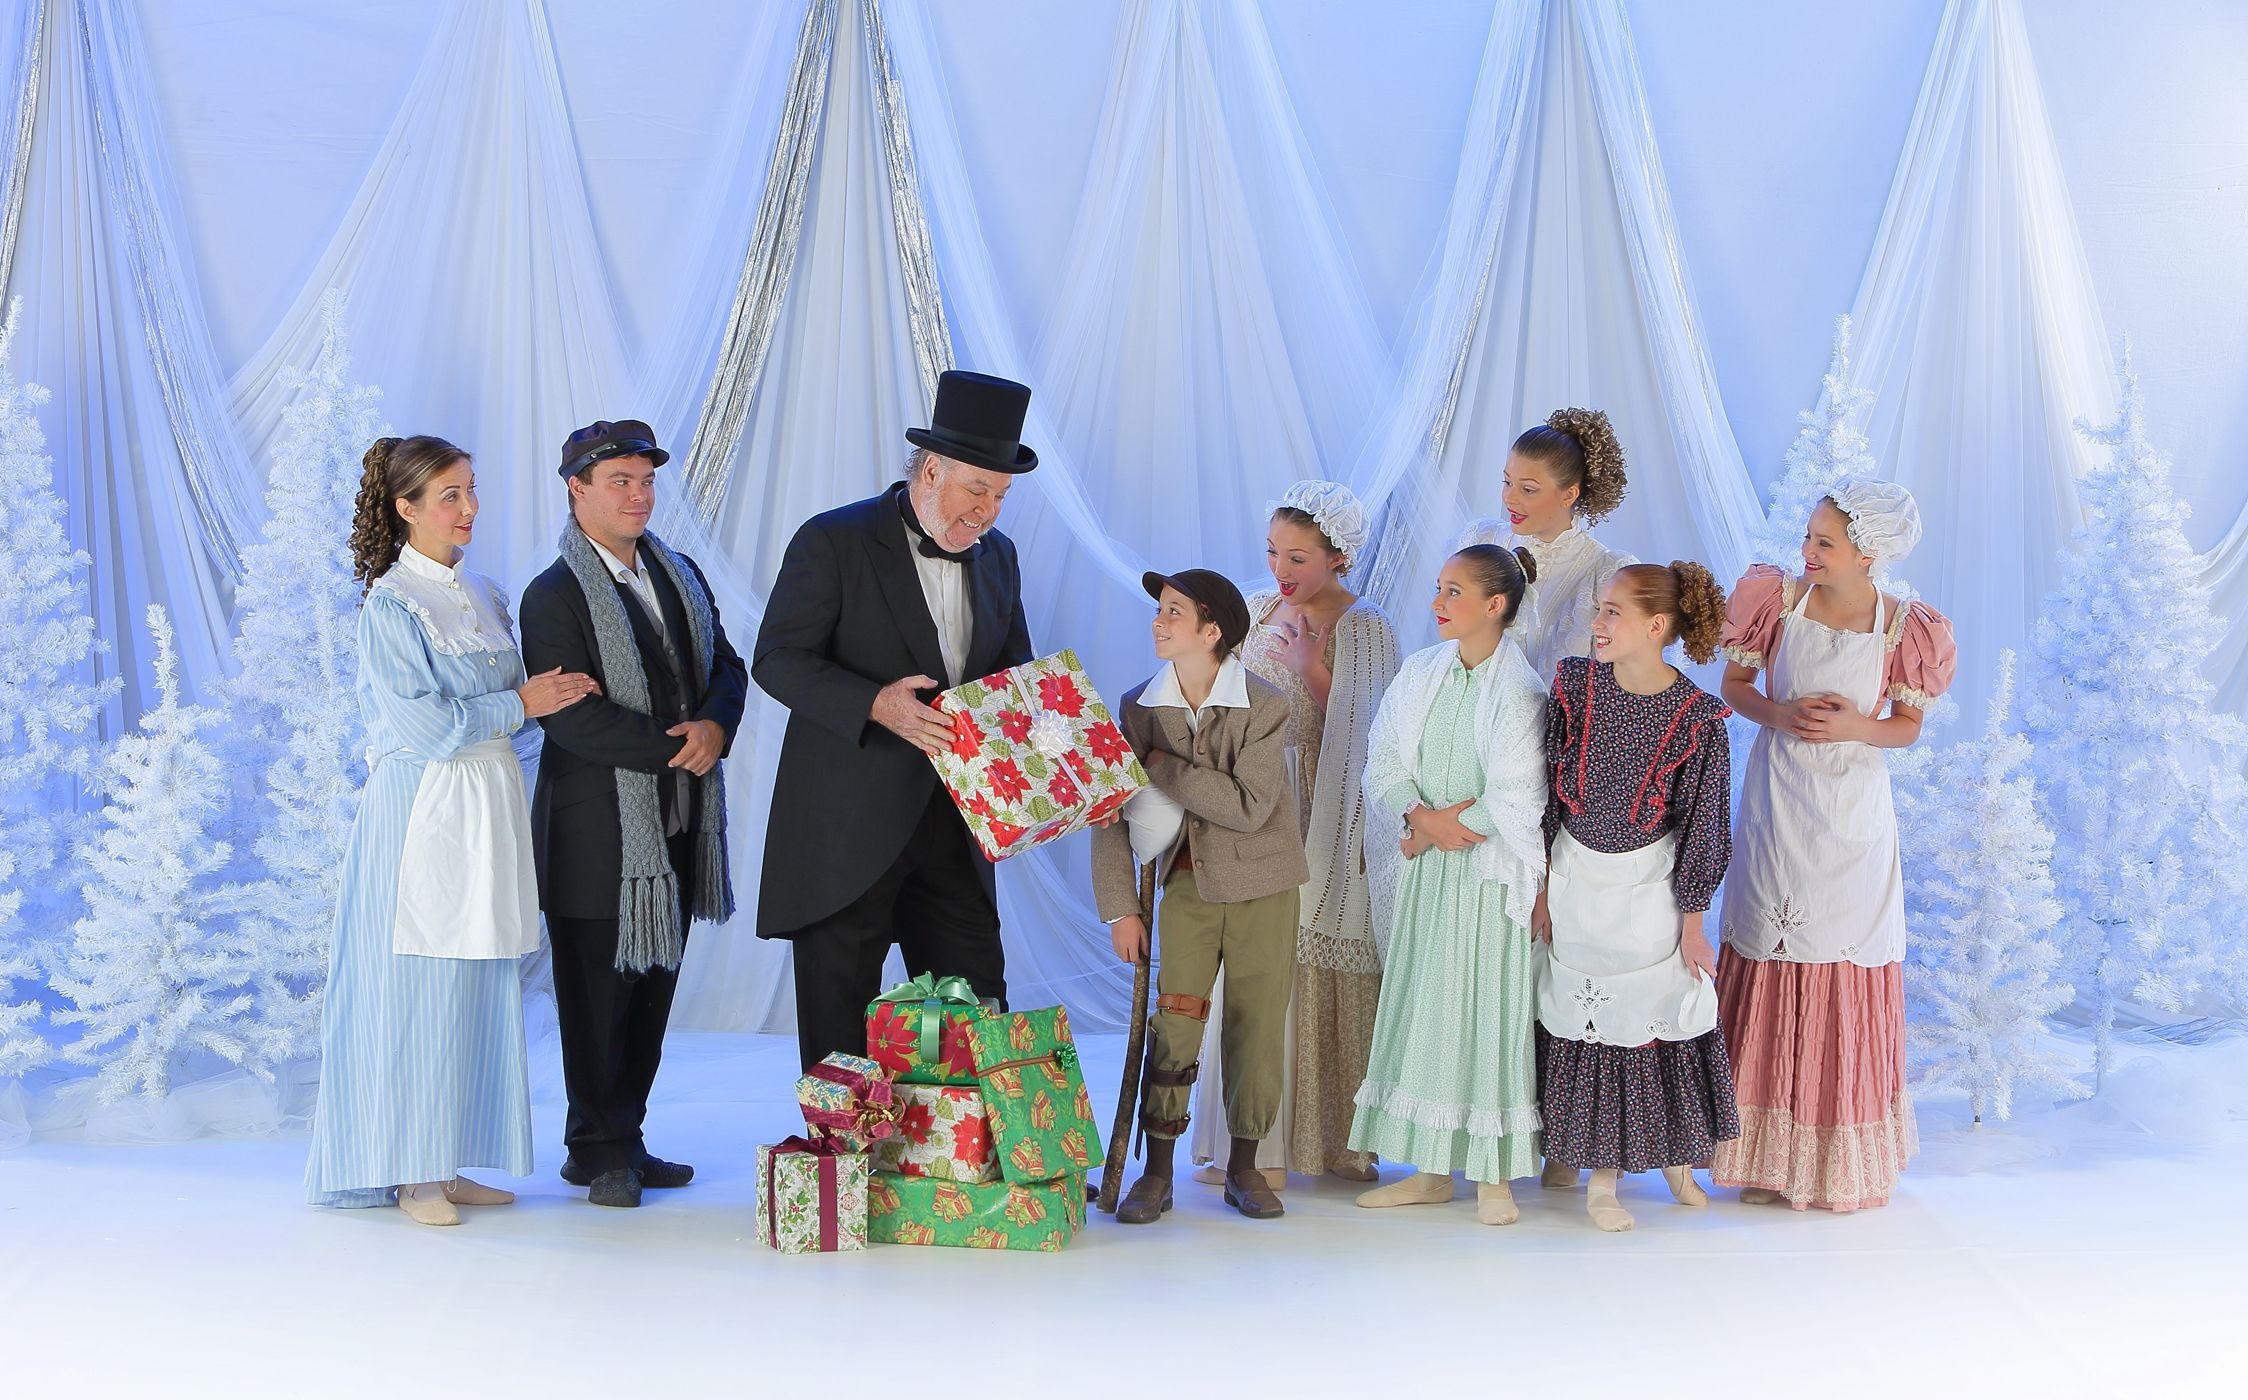 Scrooge and the Cratchit Family